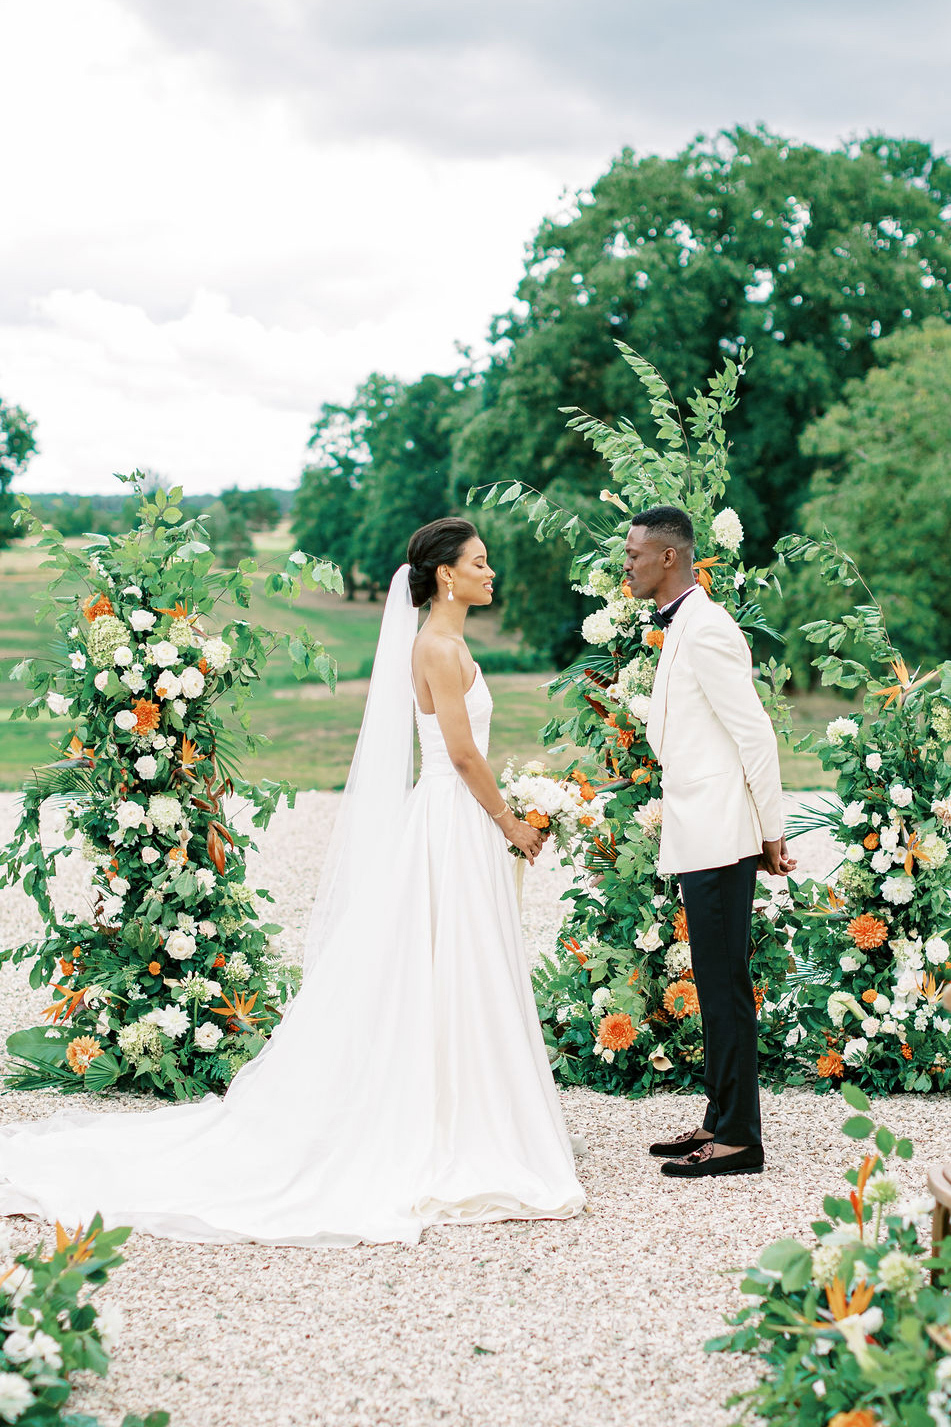 couple during outdoor ceremony in front of elegant floral installments